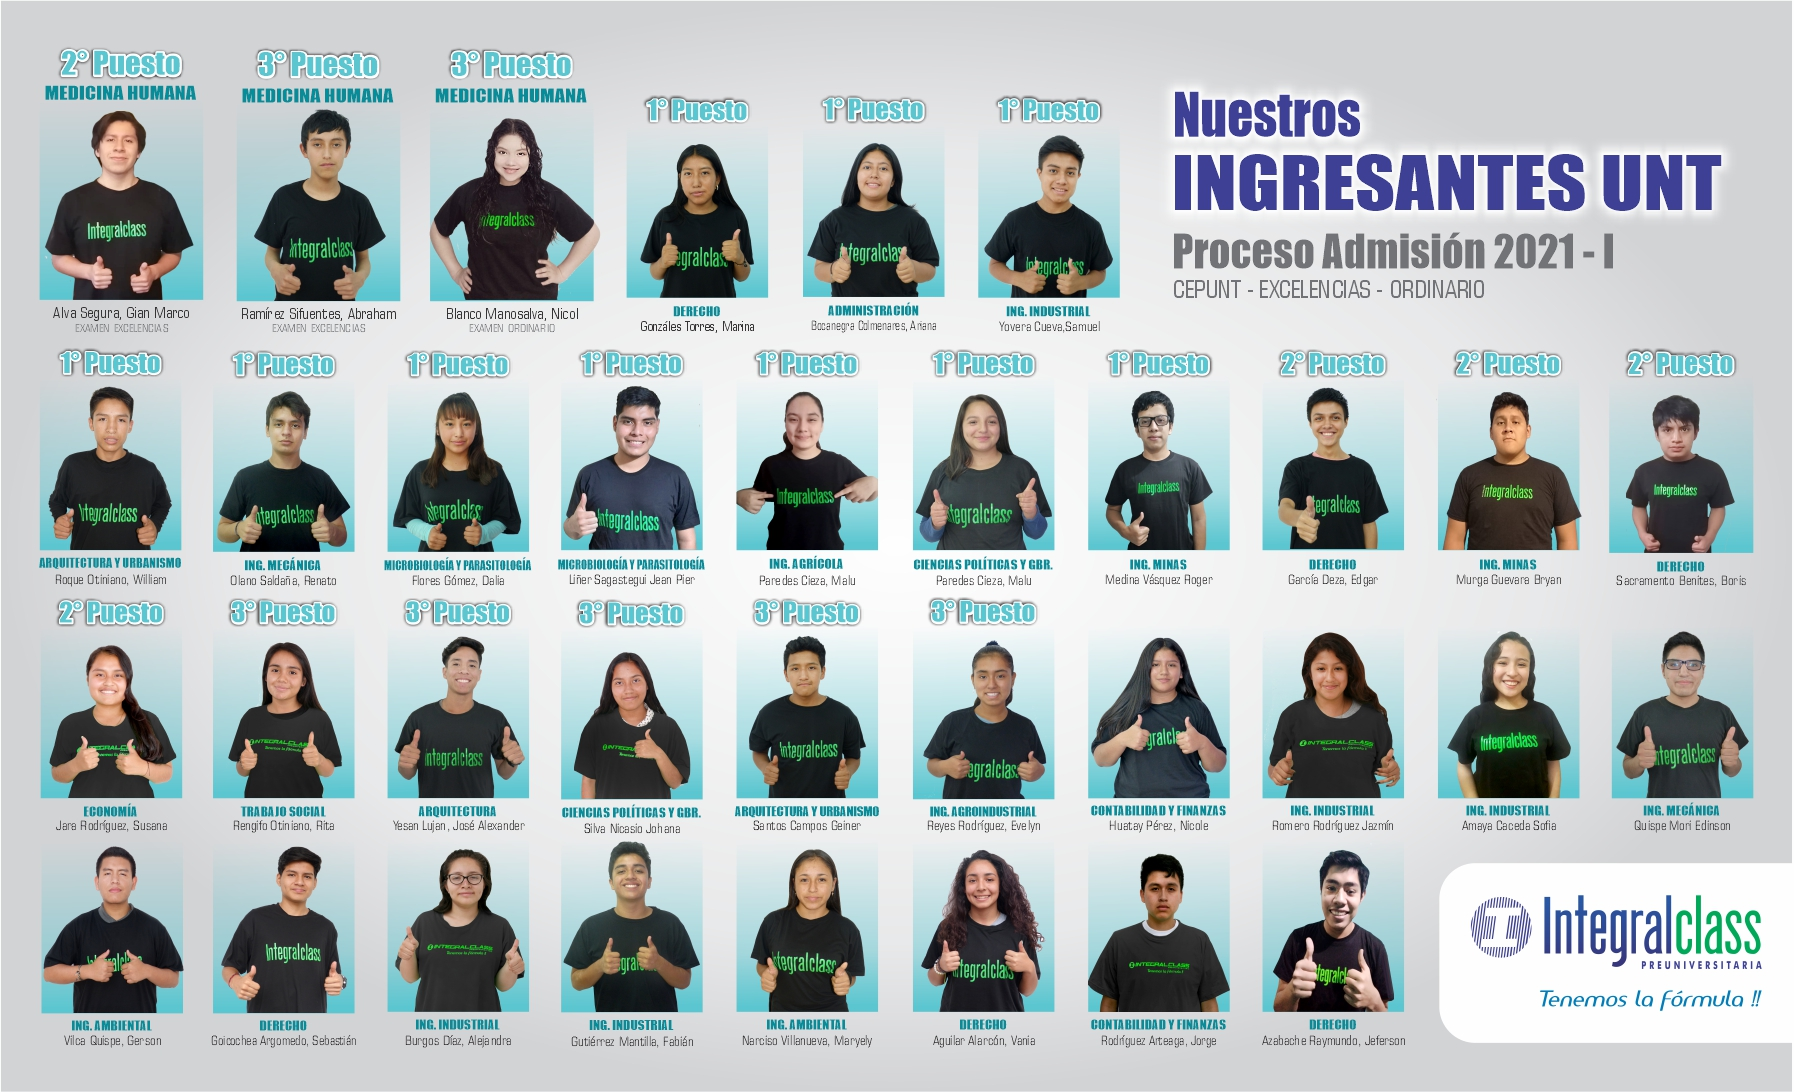 ingresantes unt